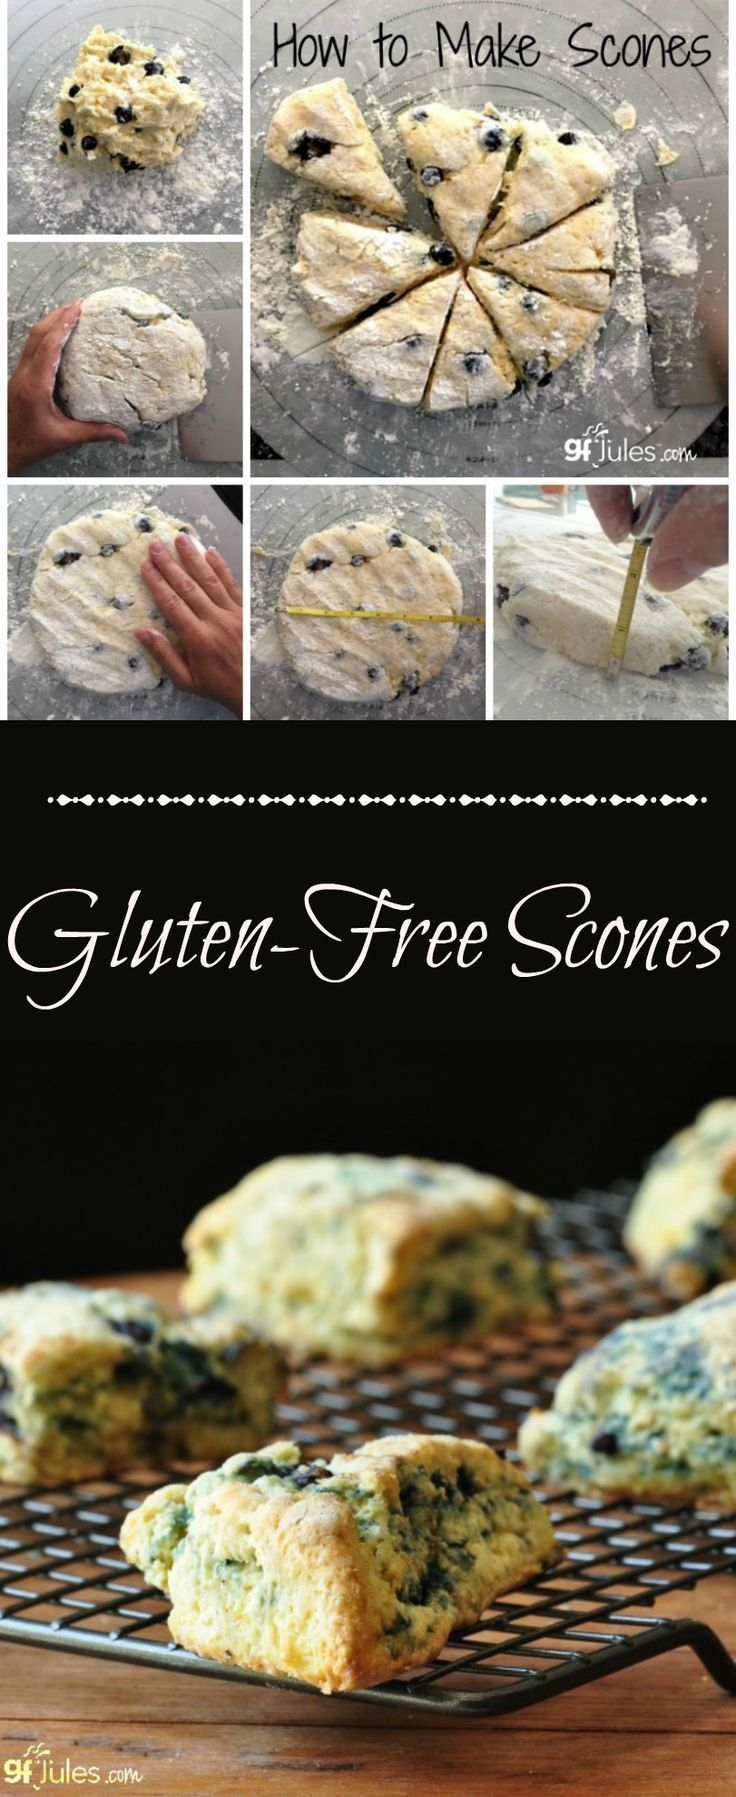 Soft & sweet gluten-free scones. This recipe is so quick and easy, it'll become your go-to breakfast! http://gfJules.com